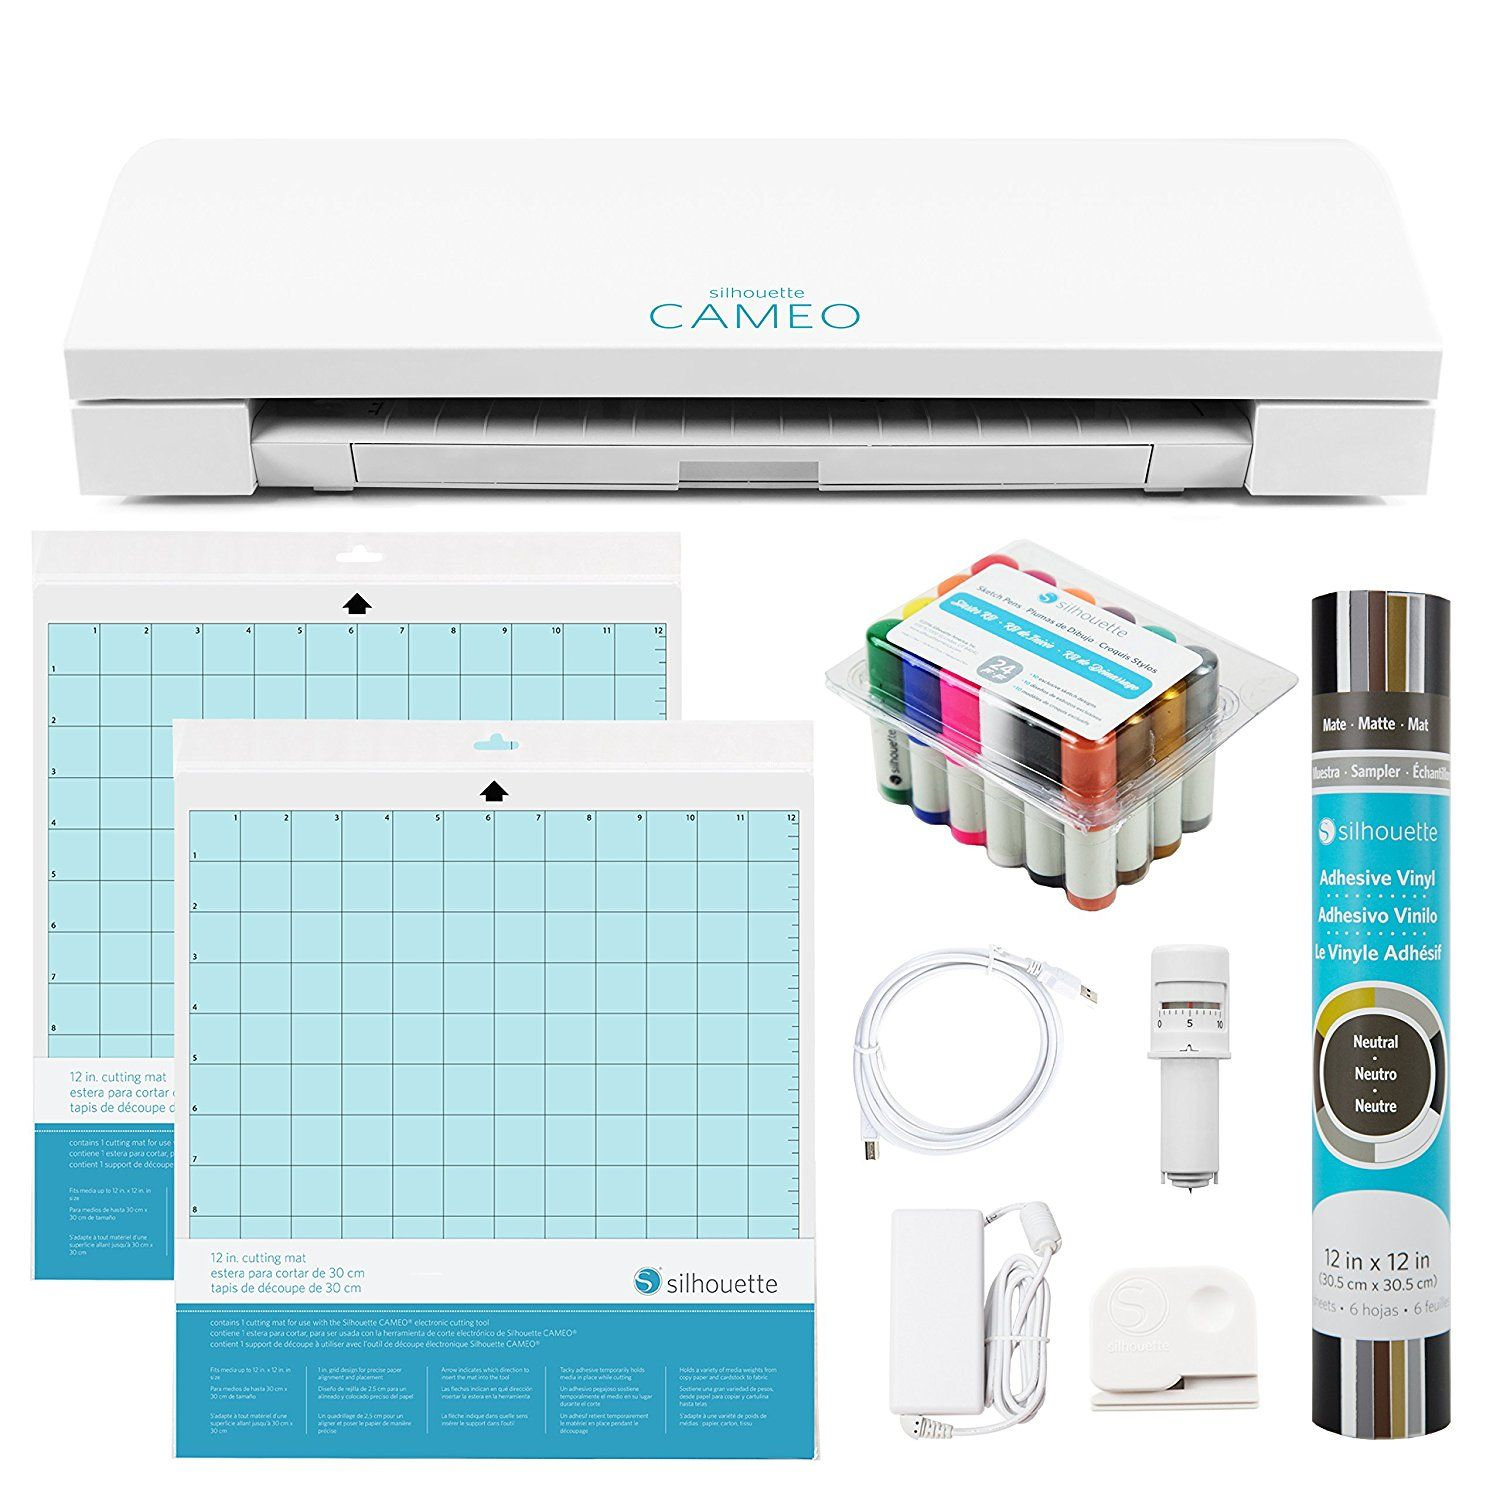 Amazon Big Savings On Craft Kits Weather Stations Calendars Winter Clothing Toys And More Silhouette Cameo Craft Kits Lightning Deal